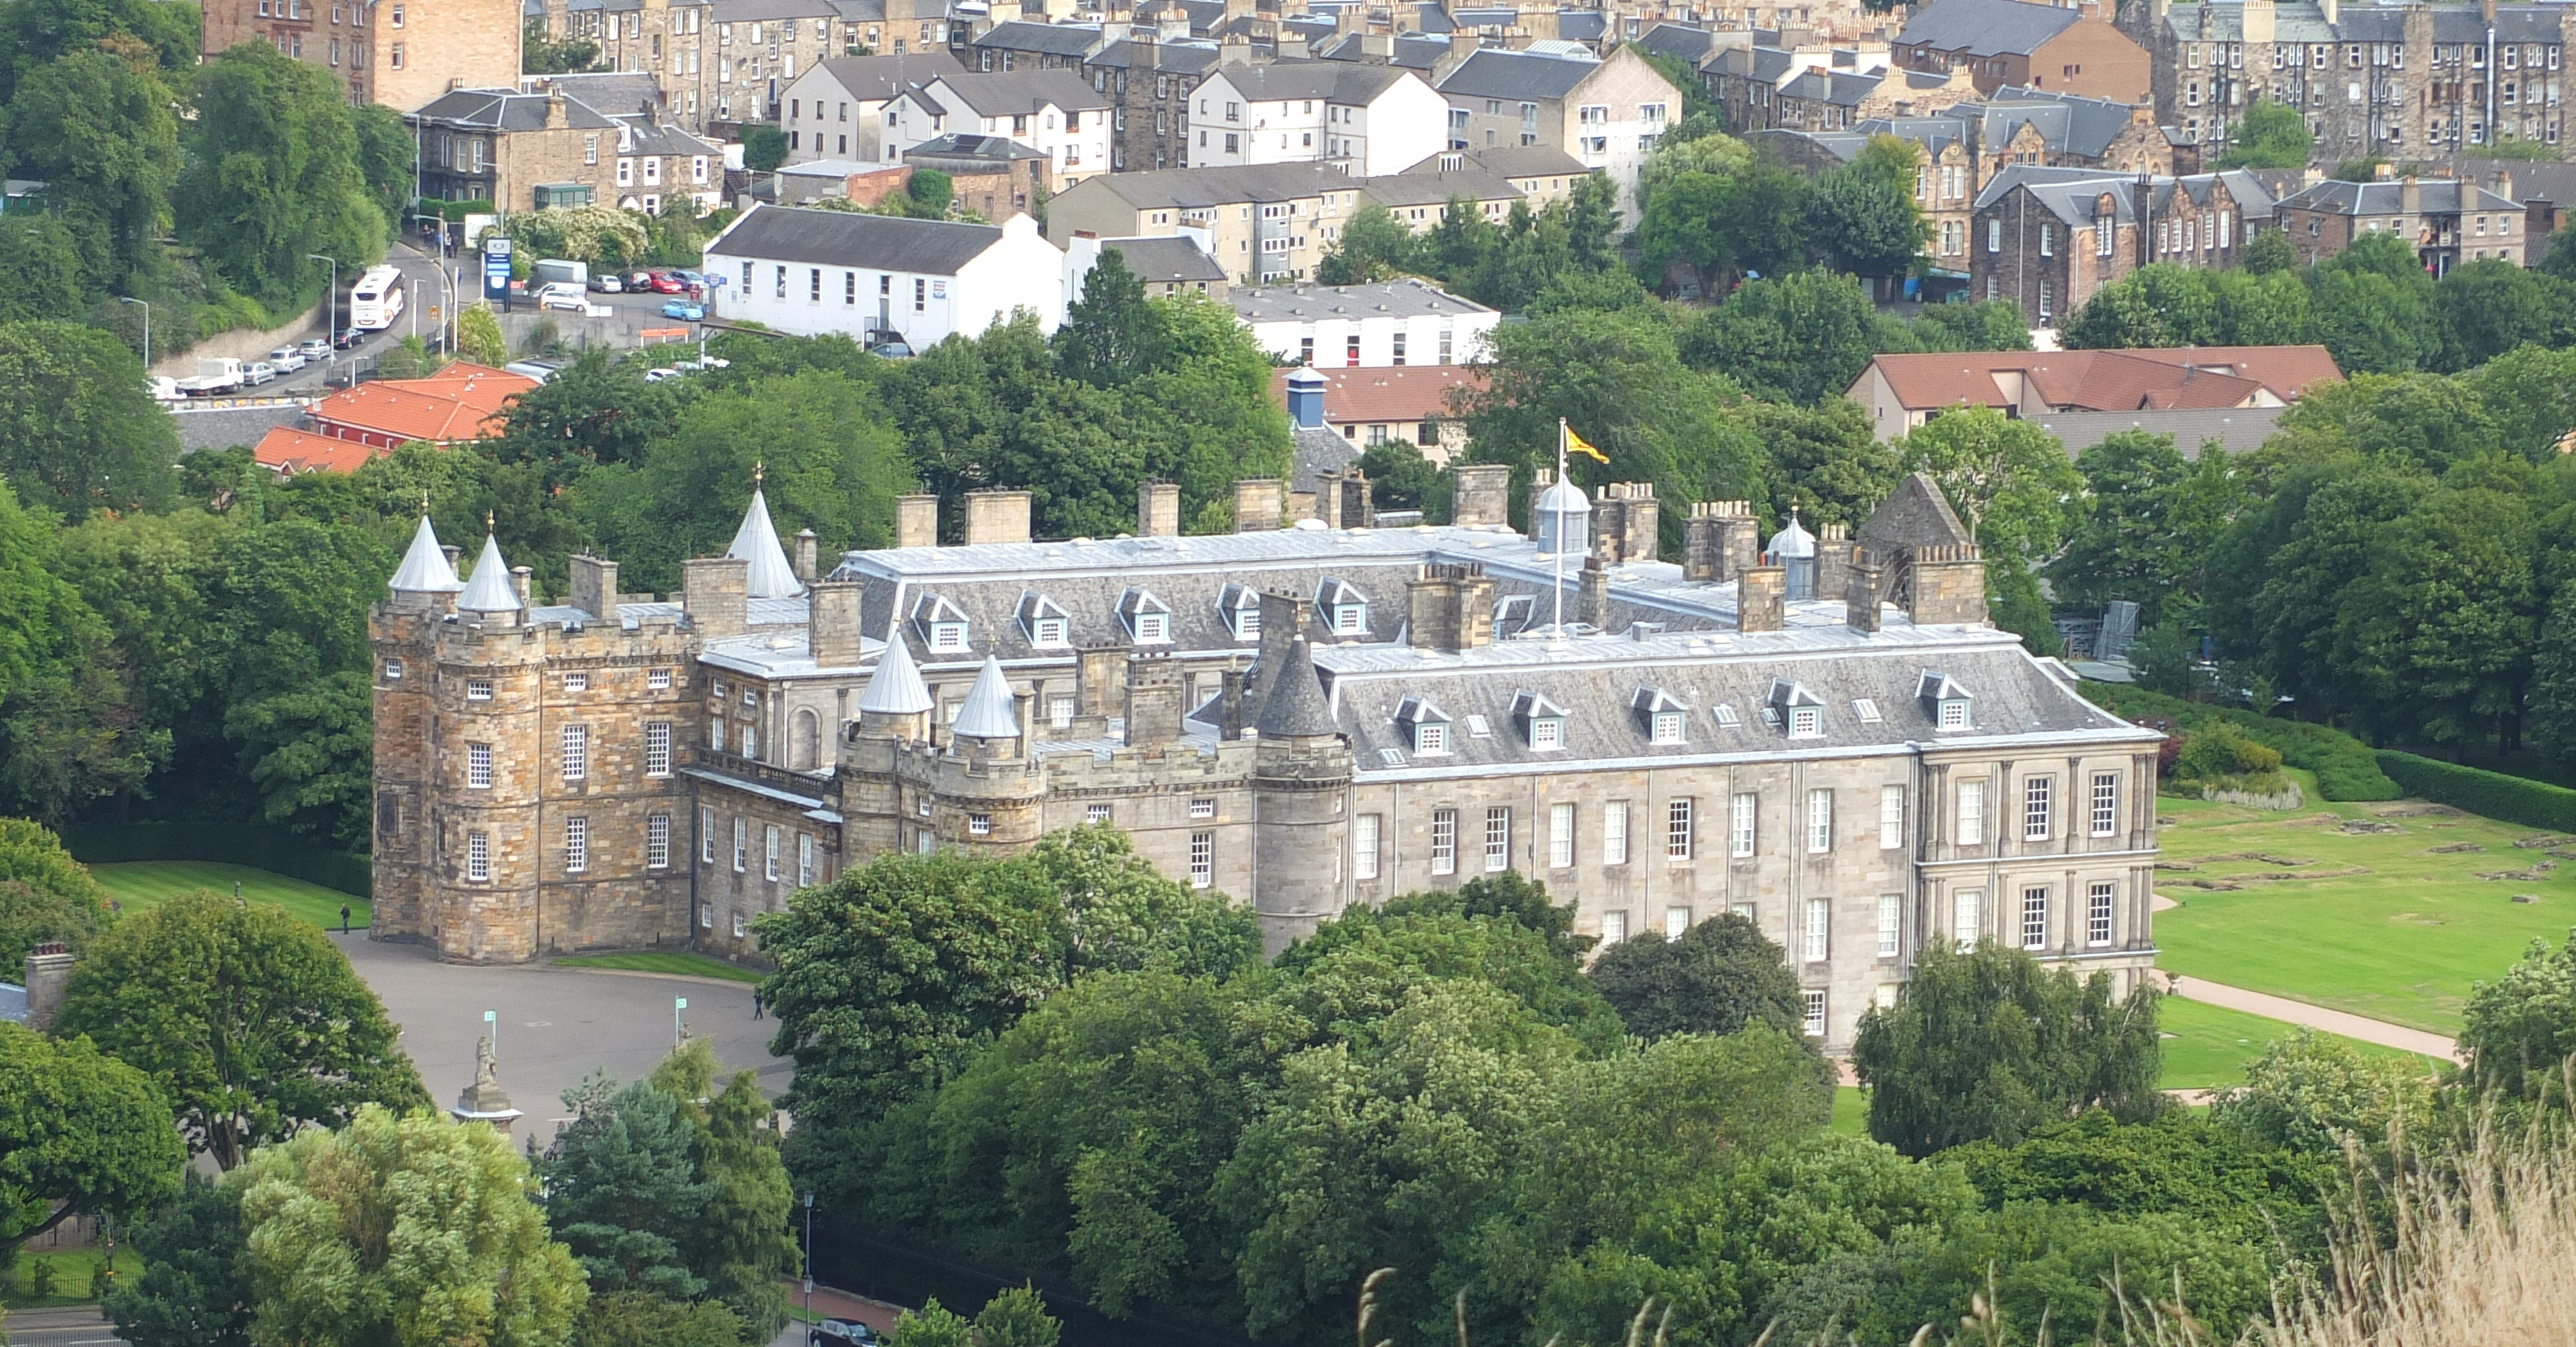 holyrood online dating Visit now for the latest edinburgh news in full - direct from the edinburgh evening news and updated throughout the day.